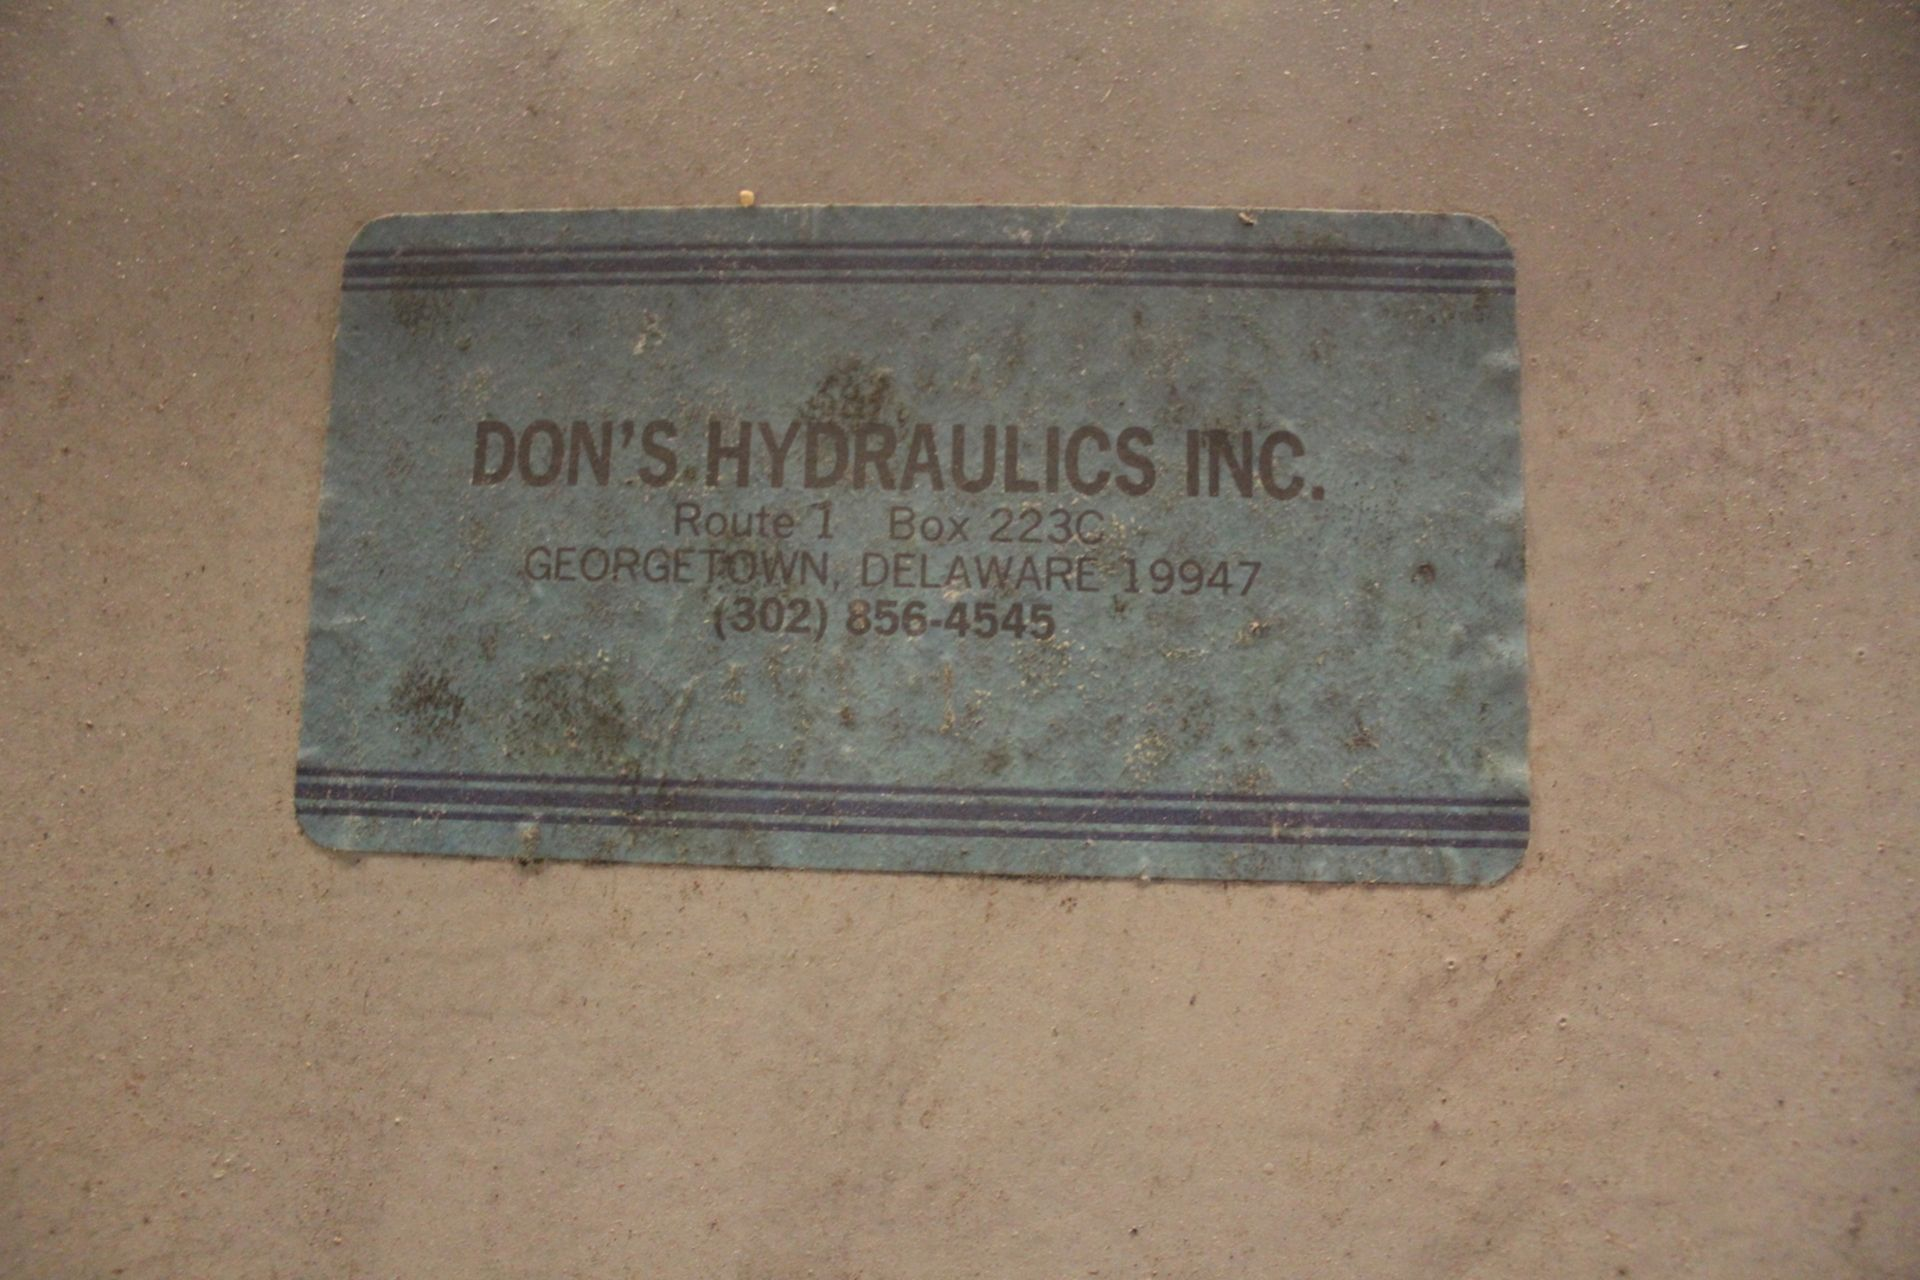 Don's Hydraulics Hydraulic Powerpak, Located in:Cartersville, GA - Image 6 of 8